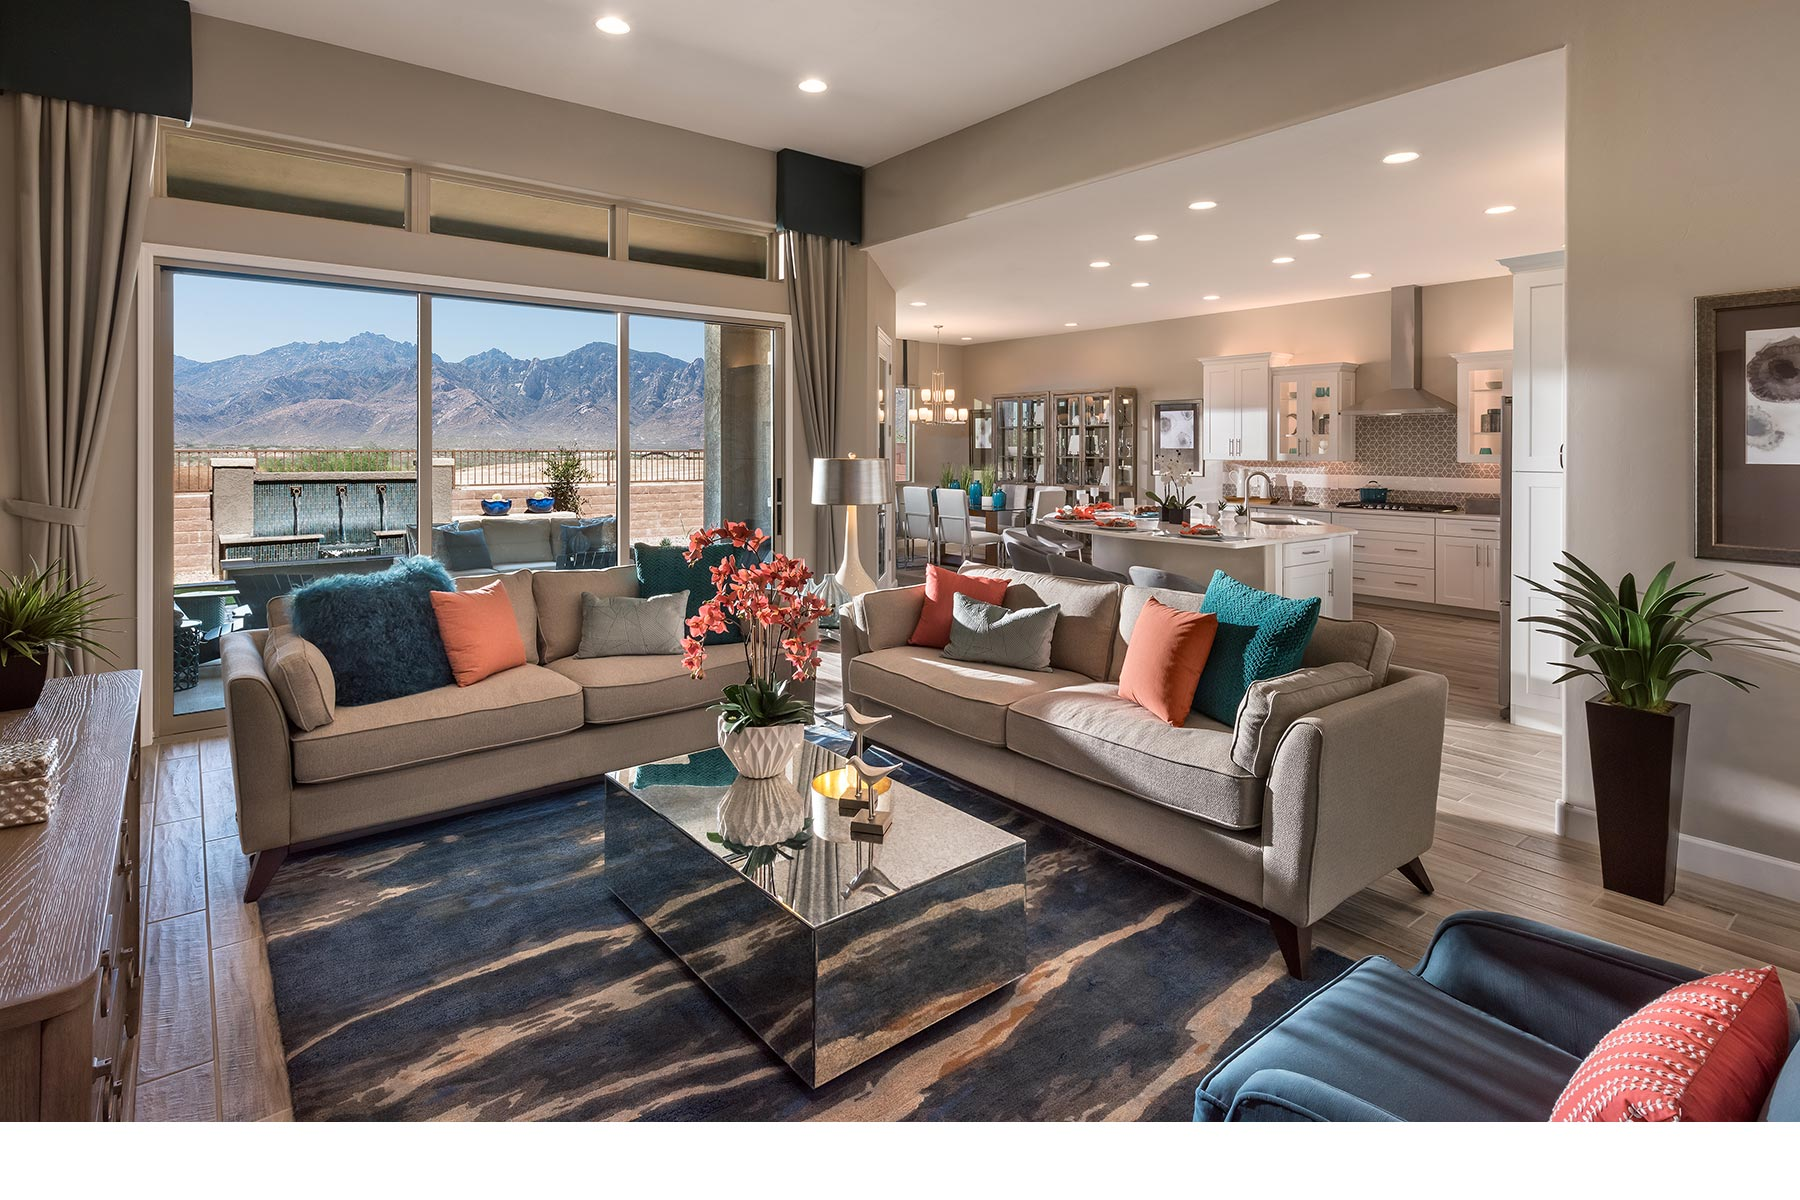 Alterra at Vistoso Trails Greatroom in Oro Valley Arizona by Mattamy Homes